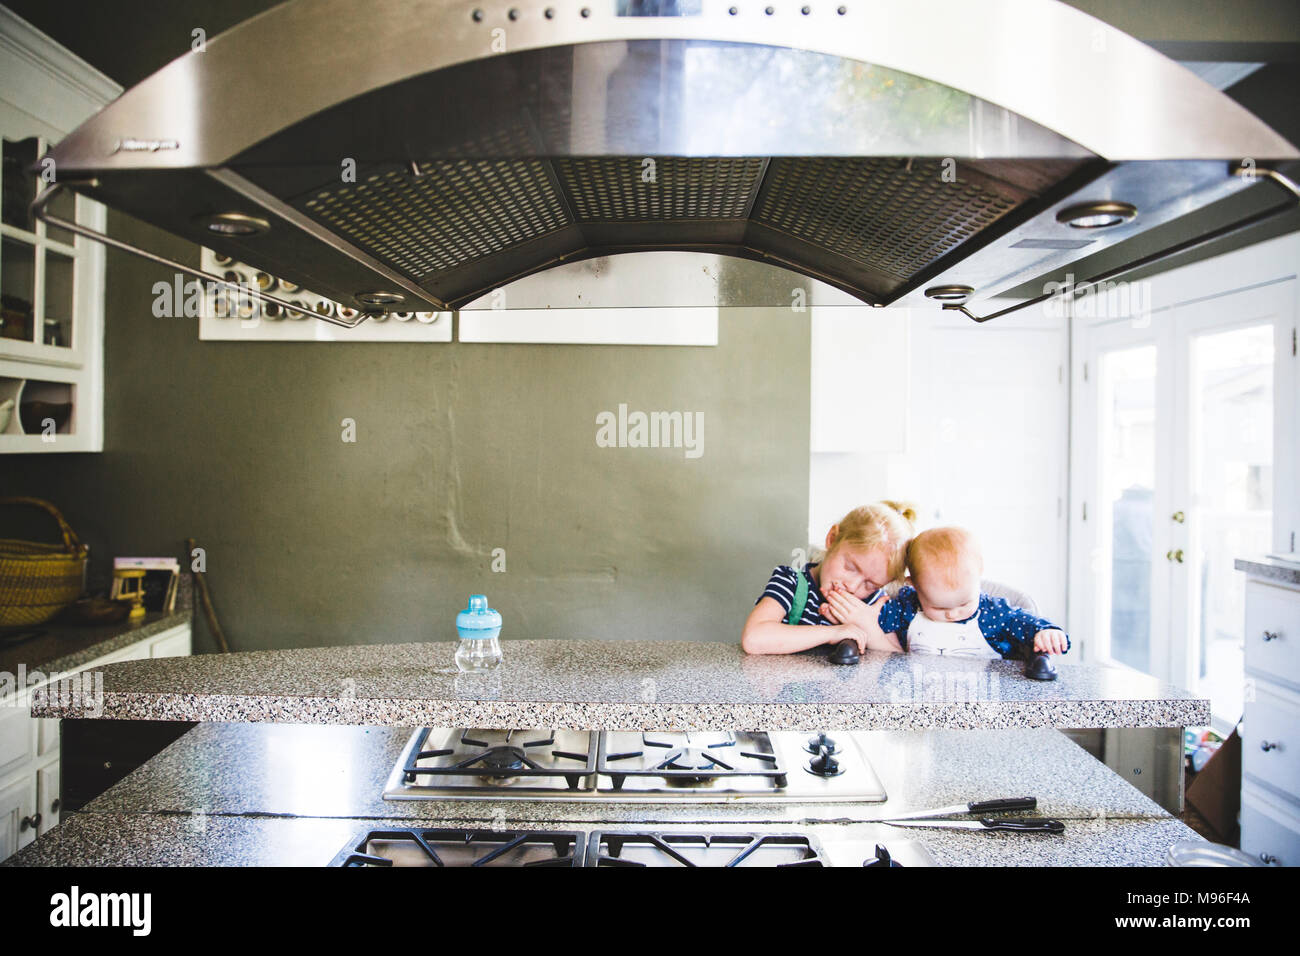 Girl and baby sitting at kitchen counter - Stock Image